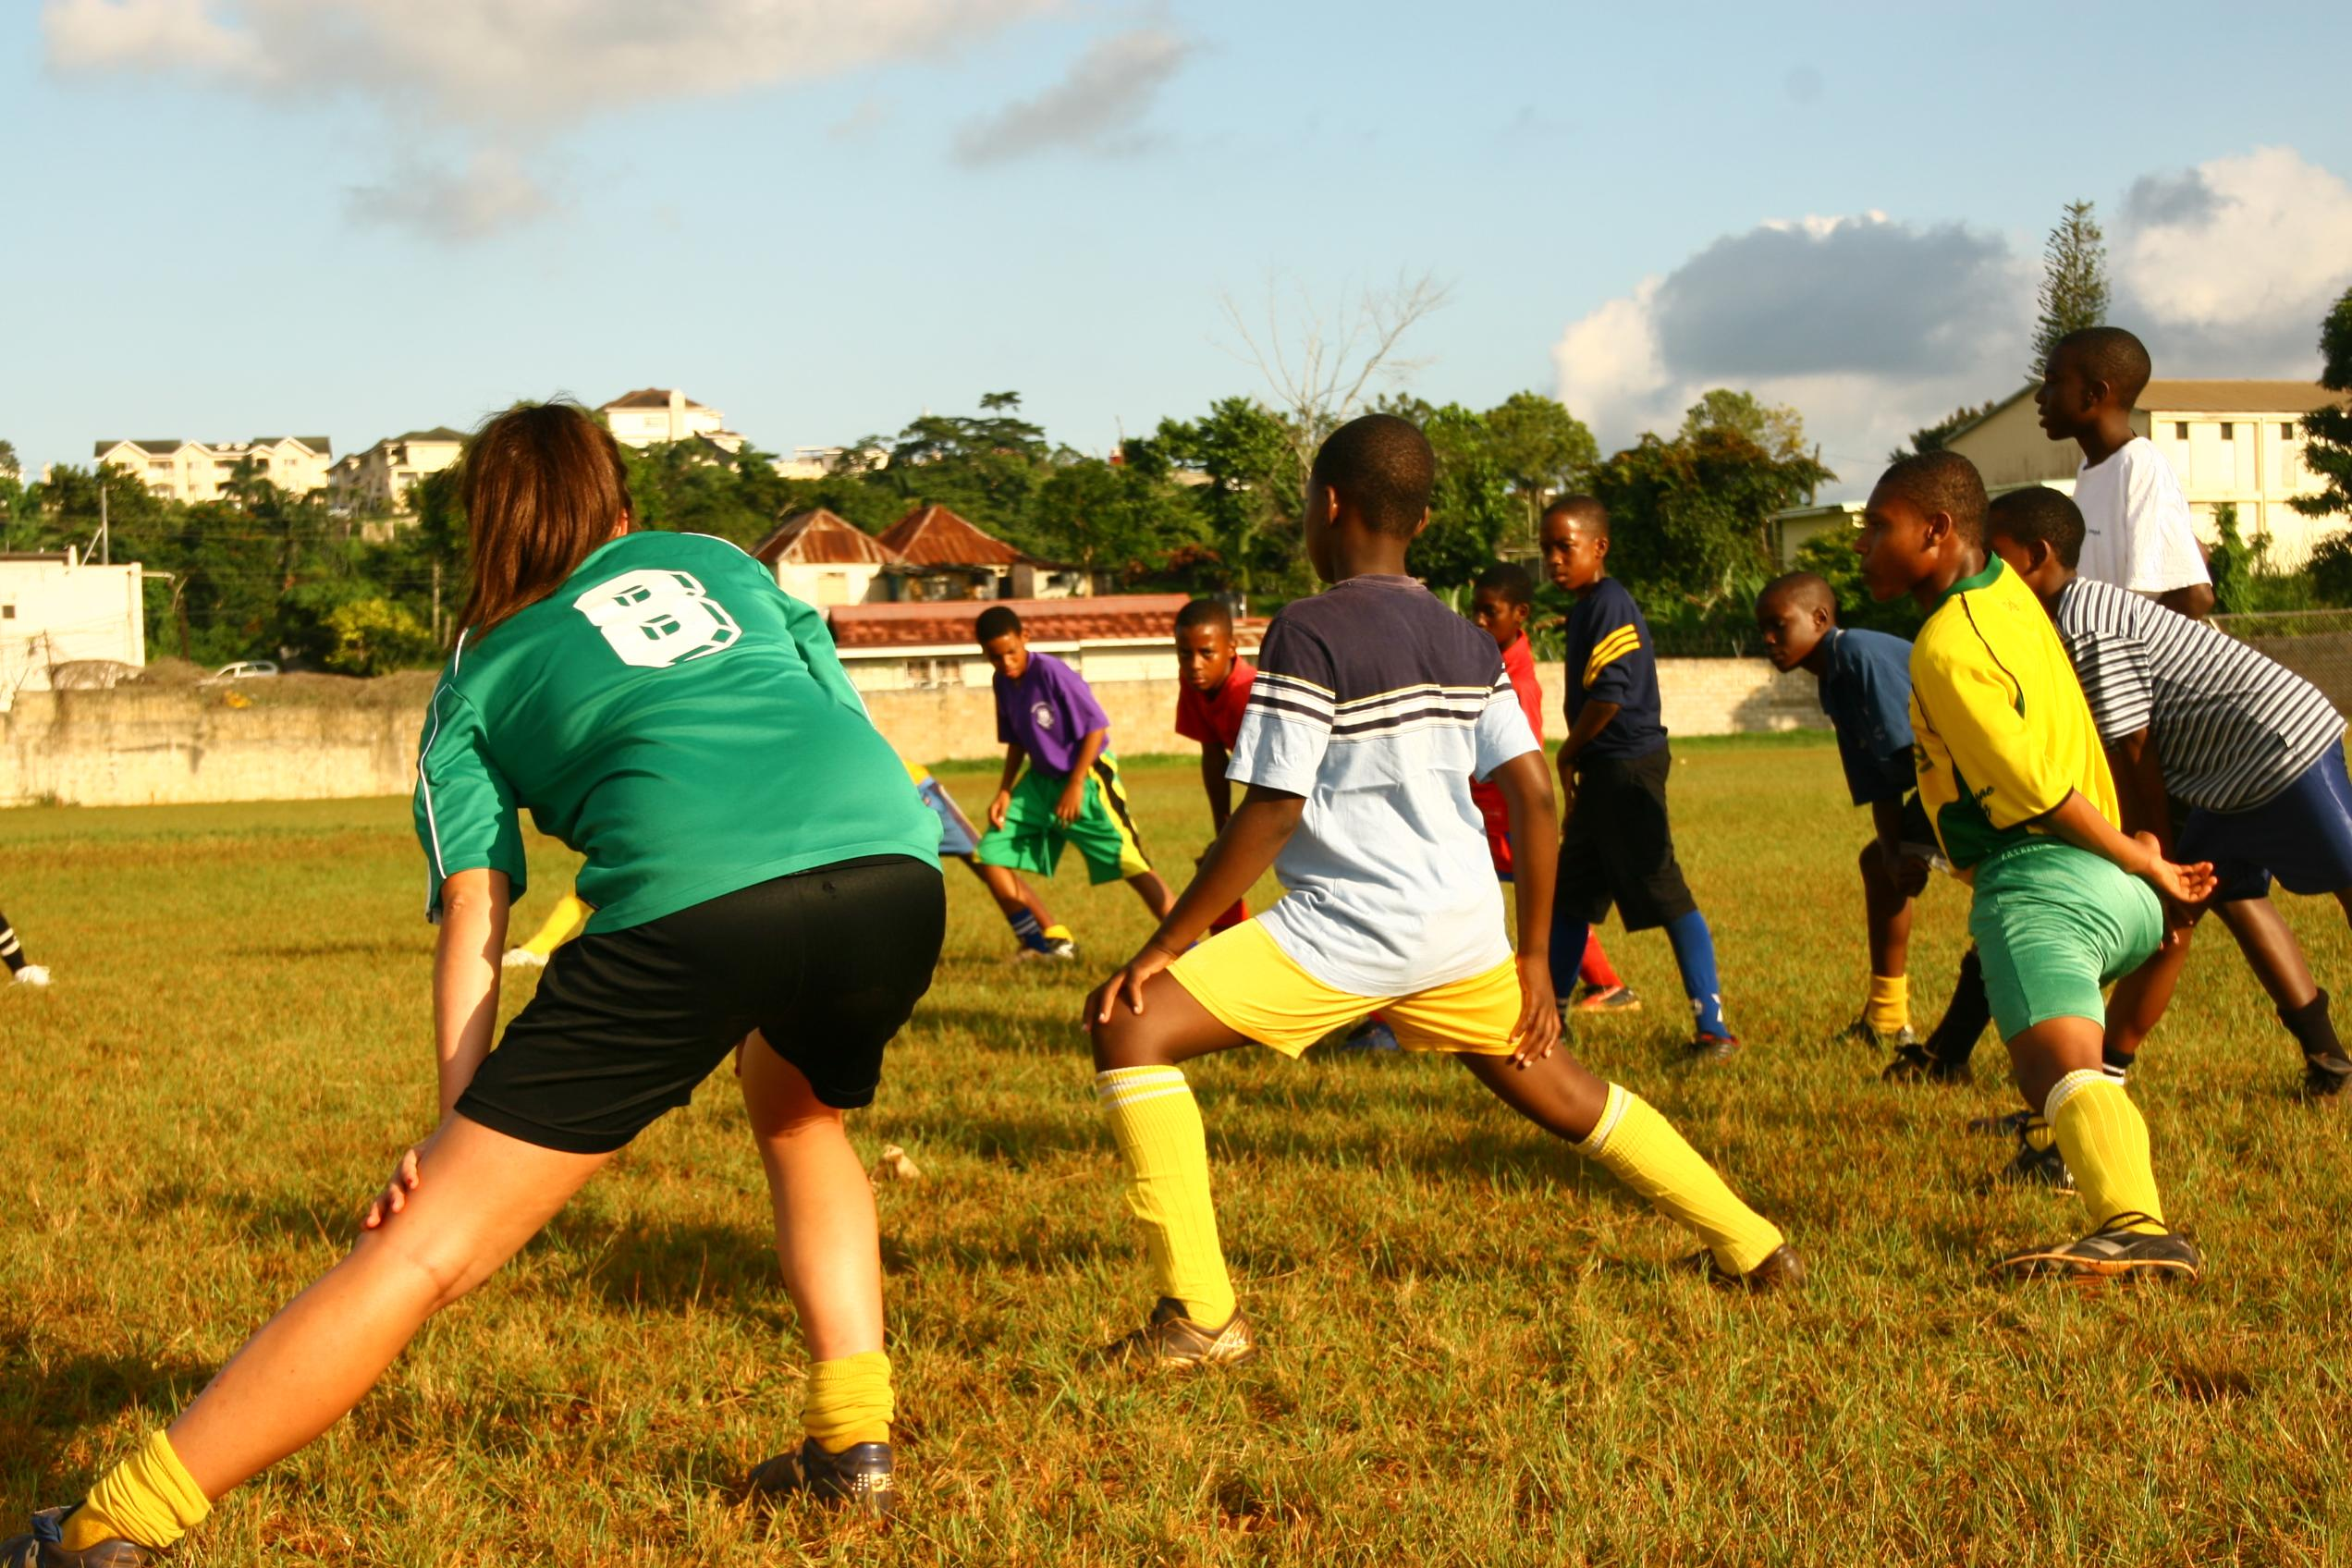 A volunteer taking football classes gains sports coaching work experience in Jamaica